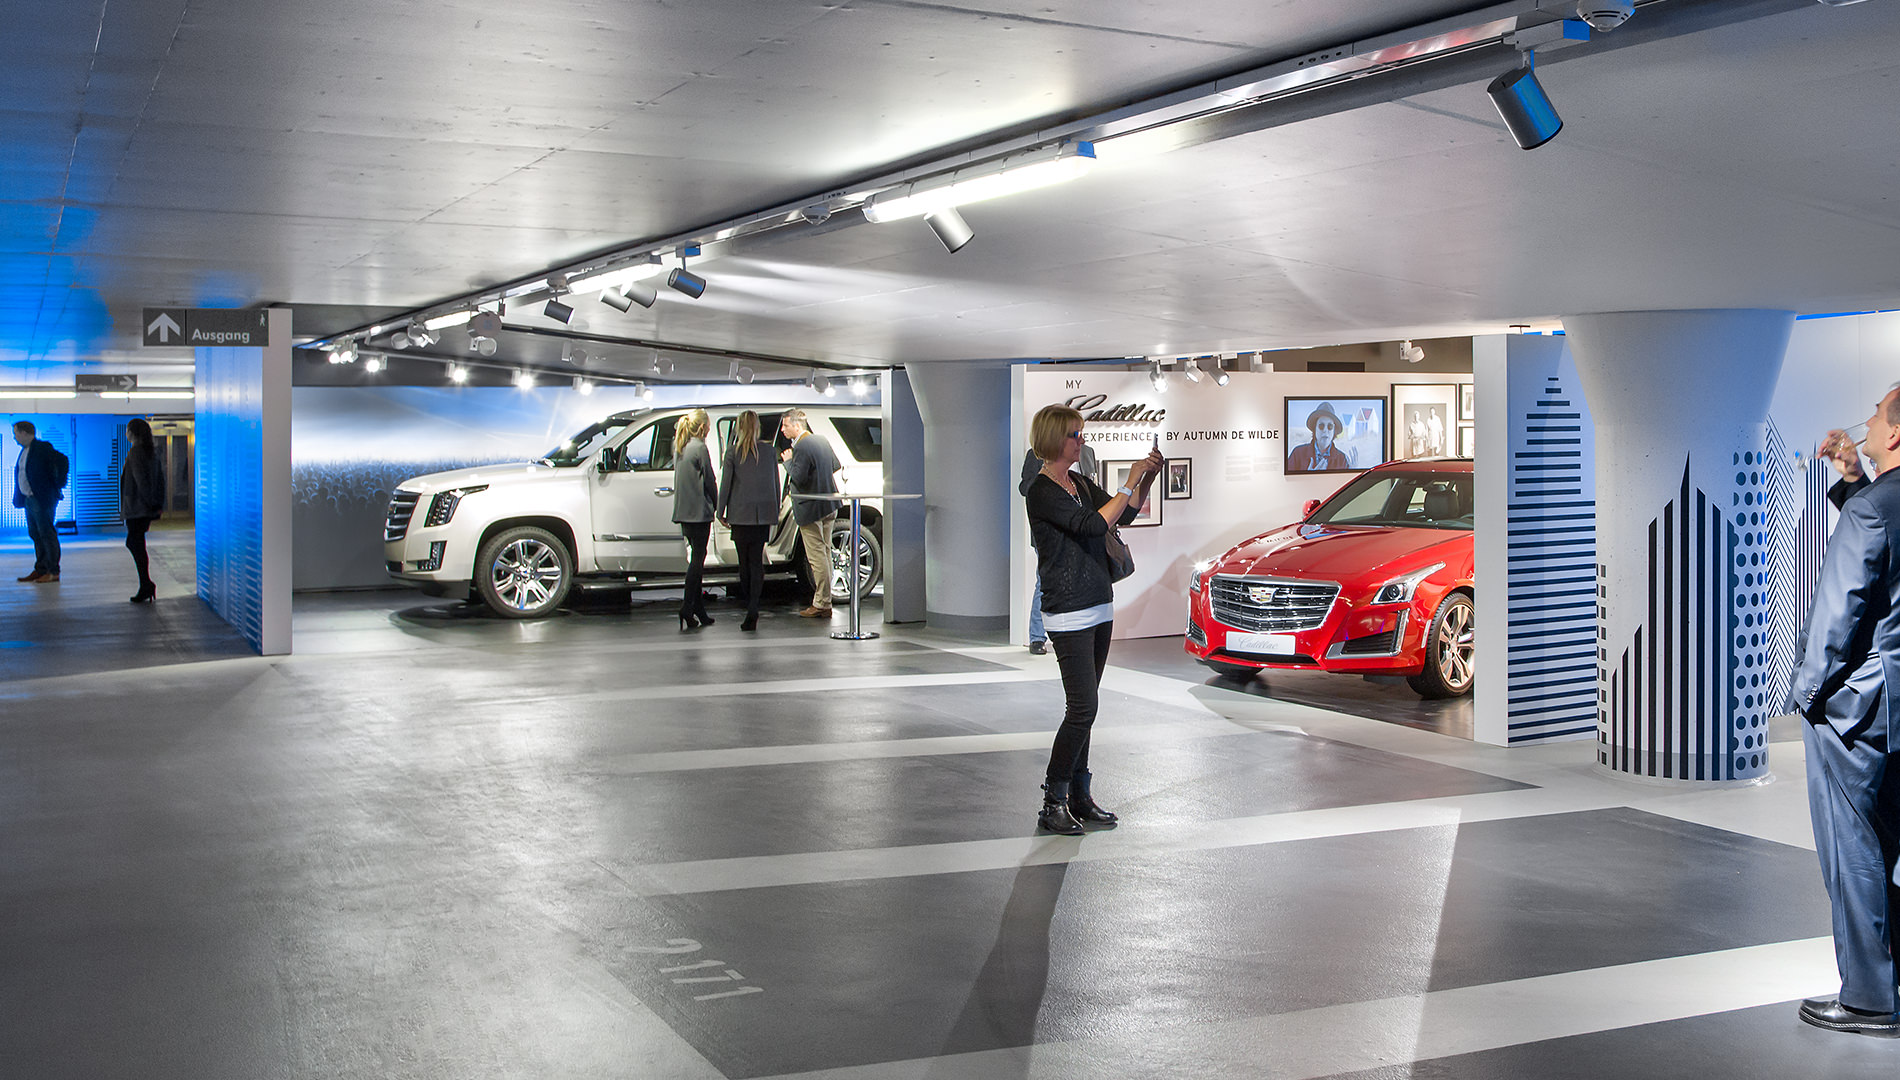 Messe Design Live Kommunikation Berlin Cadillac Experience Autos Parkhaus Gäste Going Places EventLabs